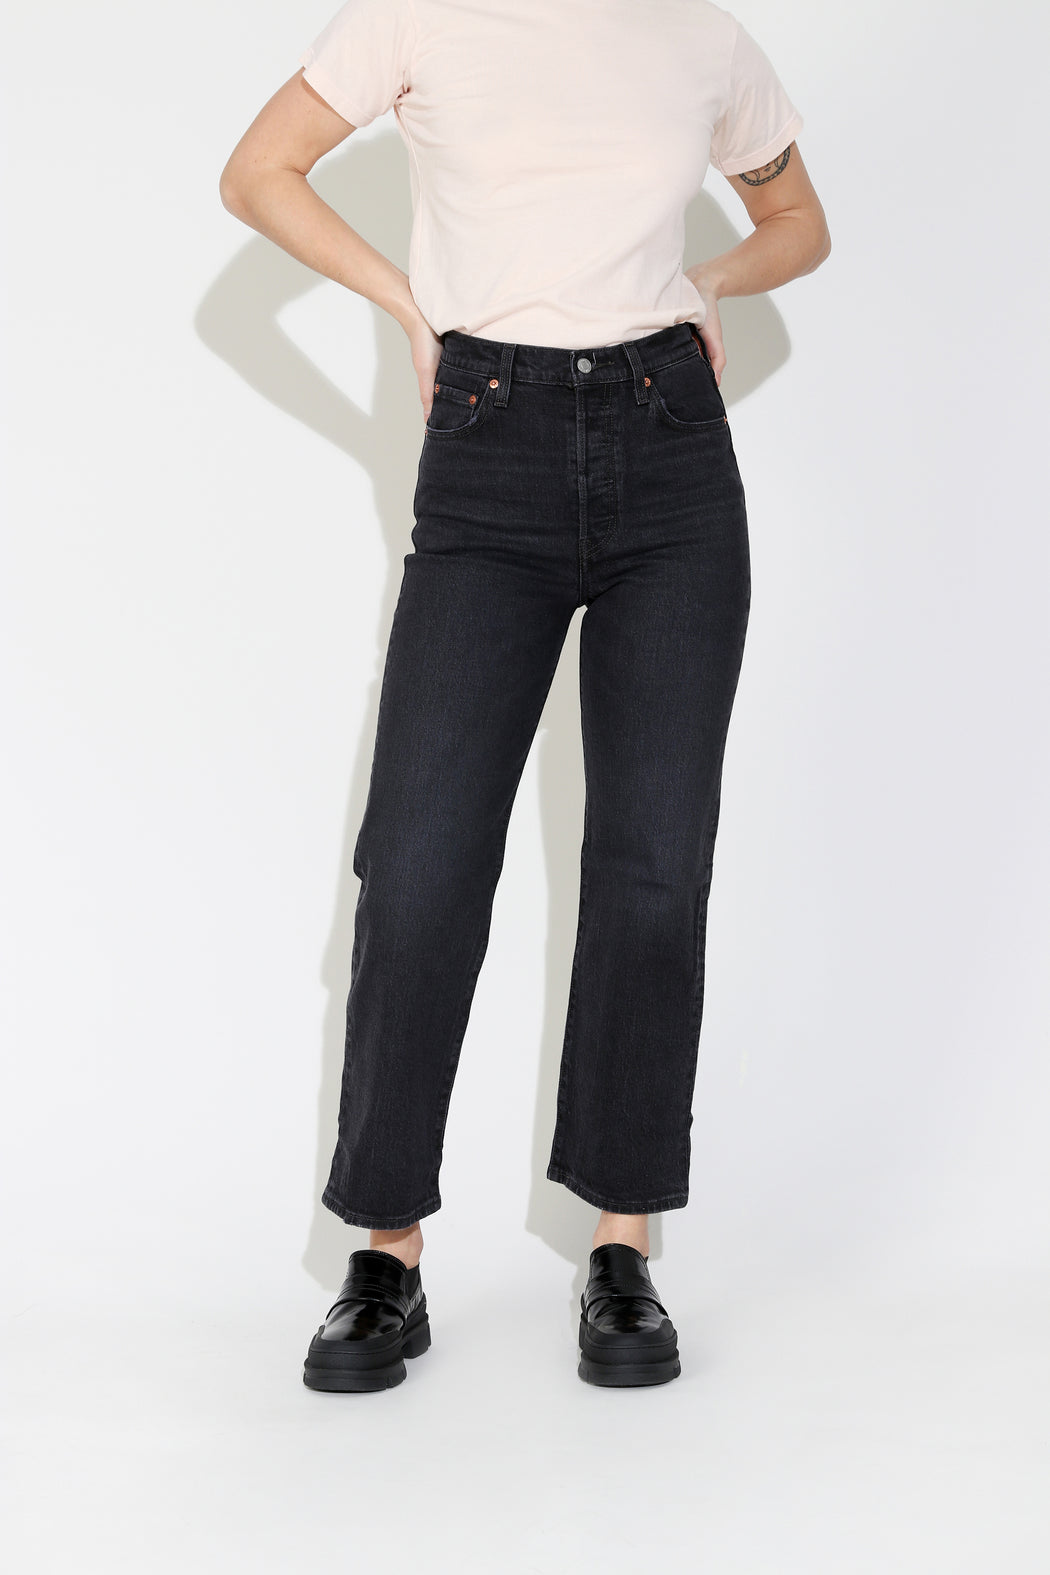 Levi's Ribcage Straight Ankle Jeans in Feelin' Cagey Black